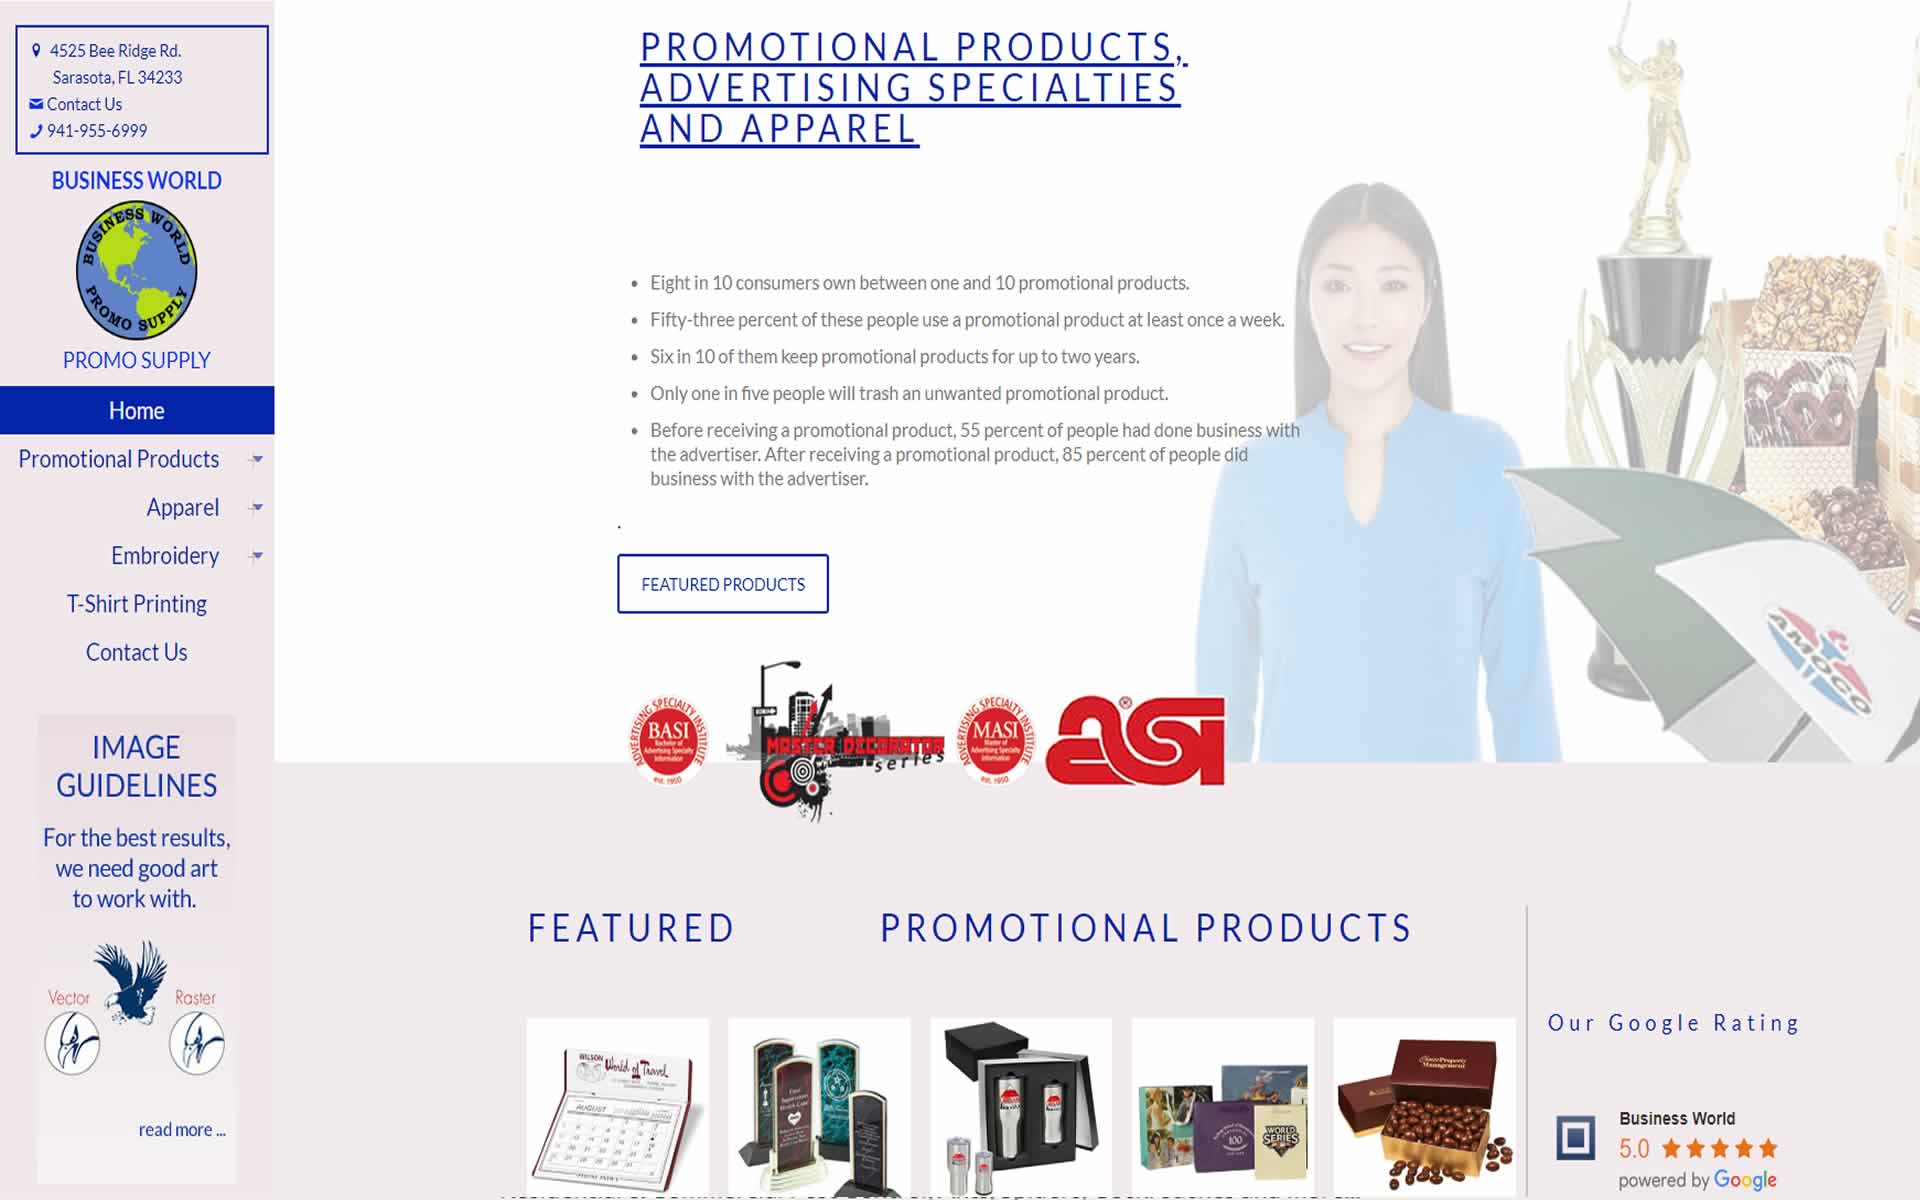 Business World Promo Supply